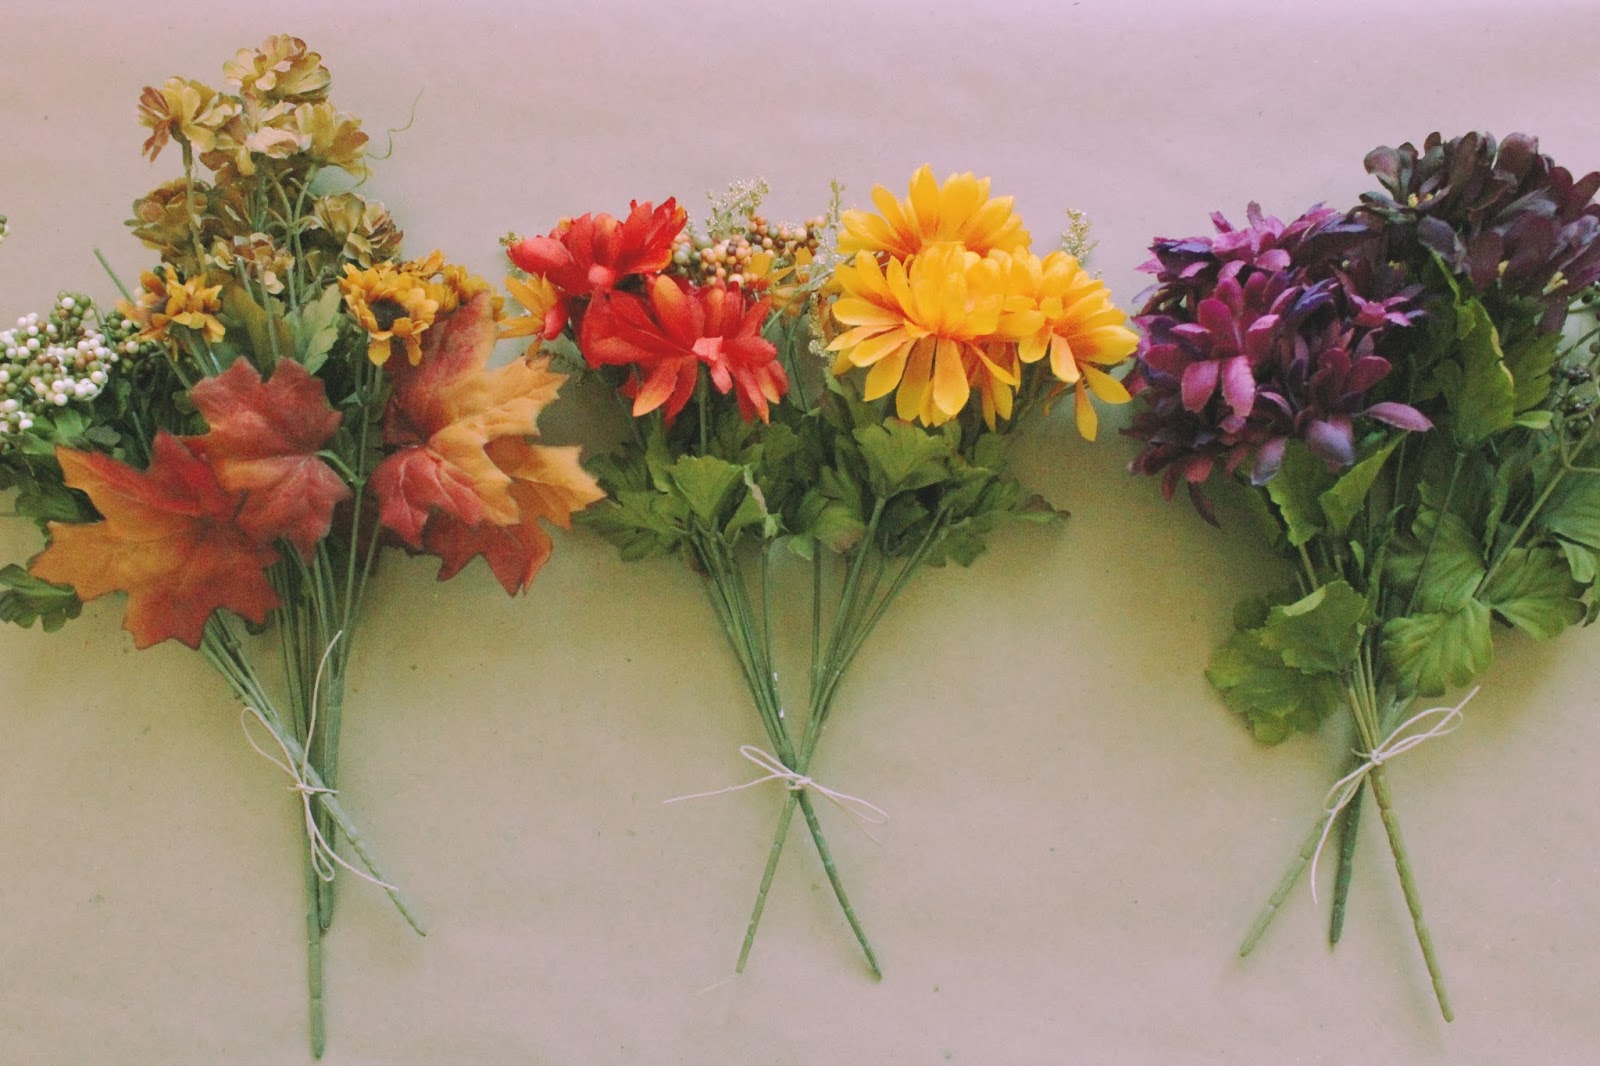 Potatopudding super sunday diy autumnal flower crowns how do i make a flower crown coordinate what color and theme you want your crown to be i am making rustic classic and wine themed autumnal crowns izmirmasajfo